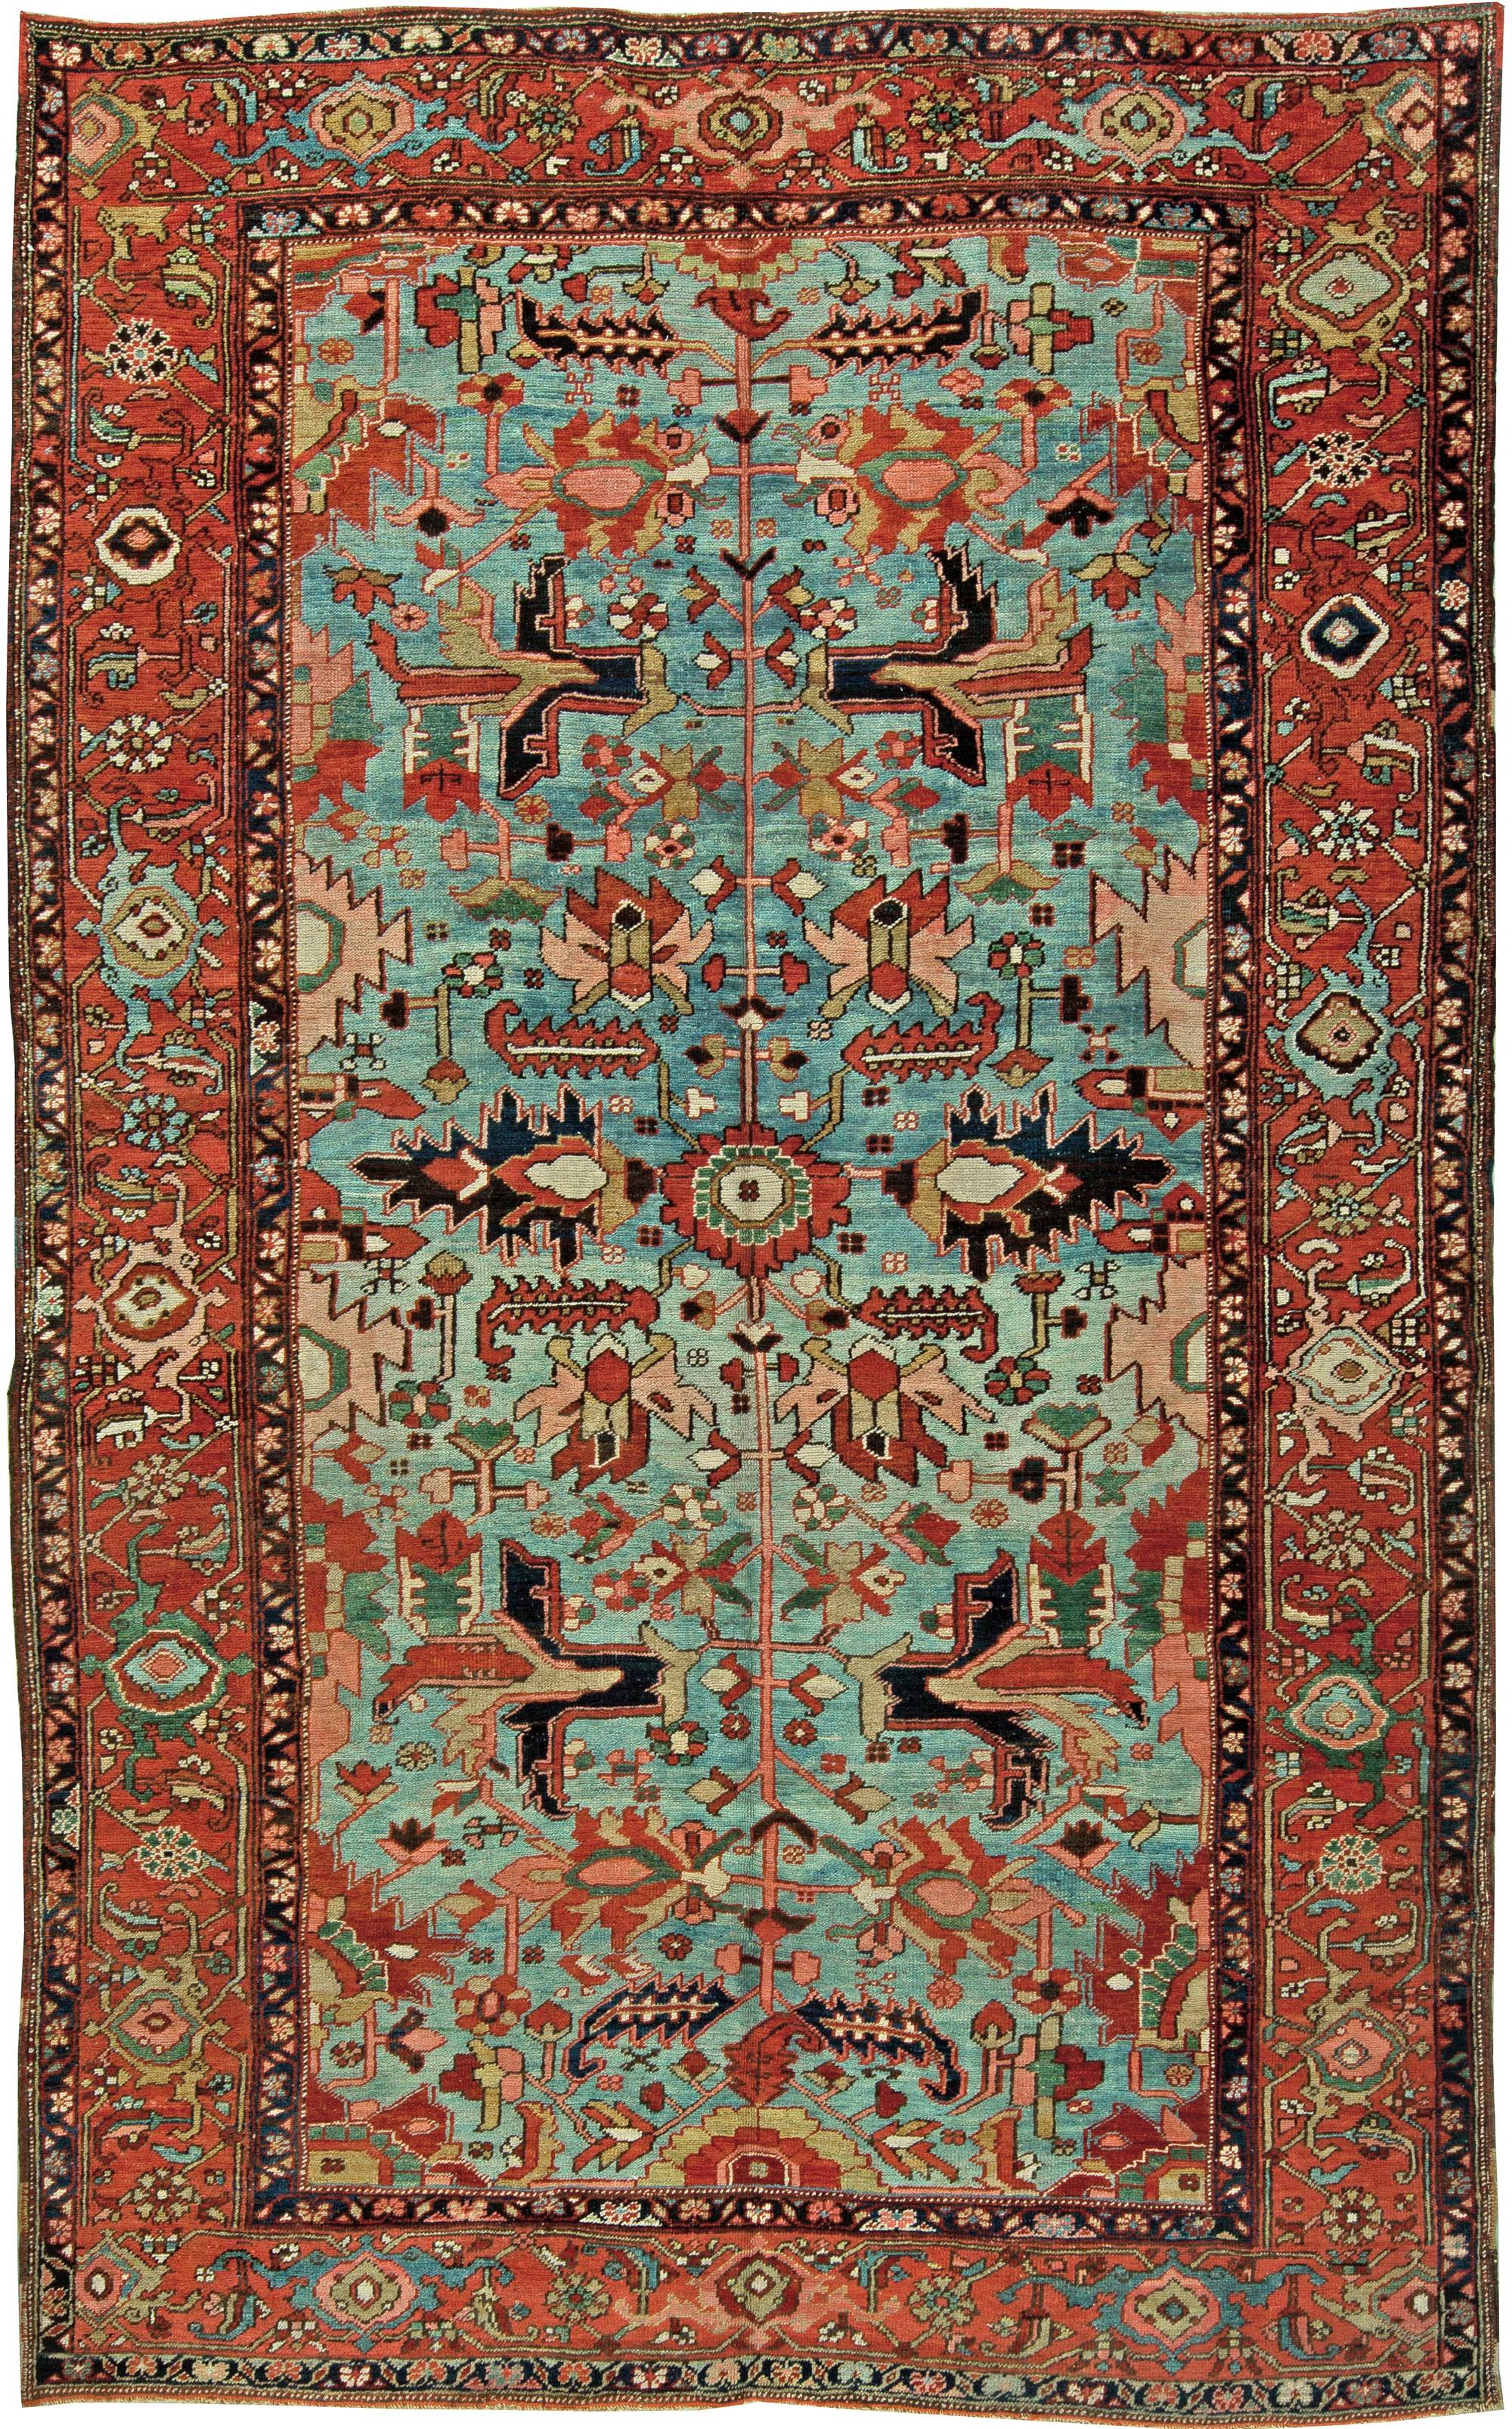 heriz rugs serapi antique persian bakshaish carpets. Black Bedroom Furniture Sets. Home Design Ideas